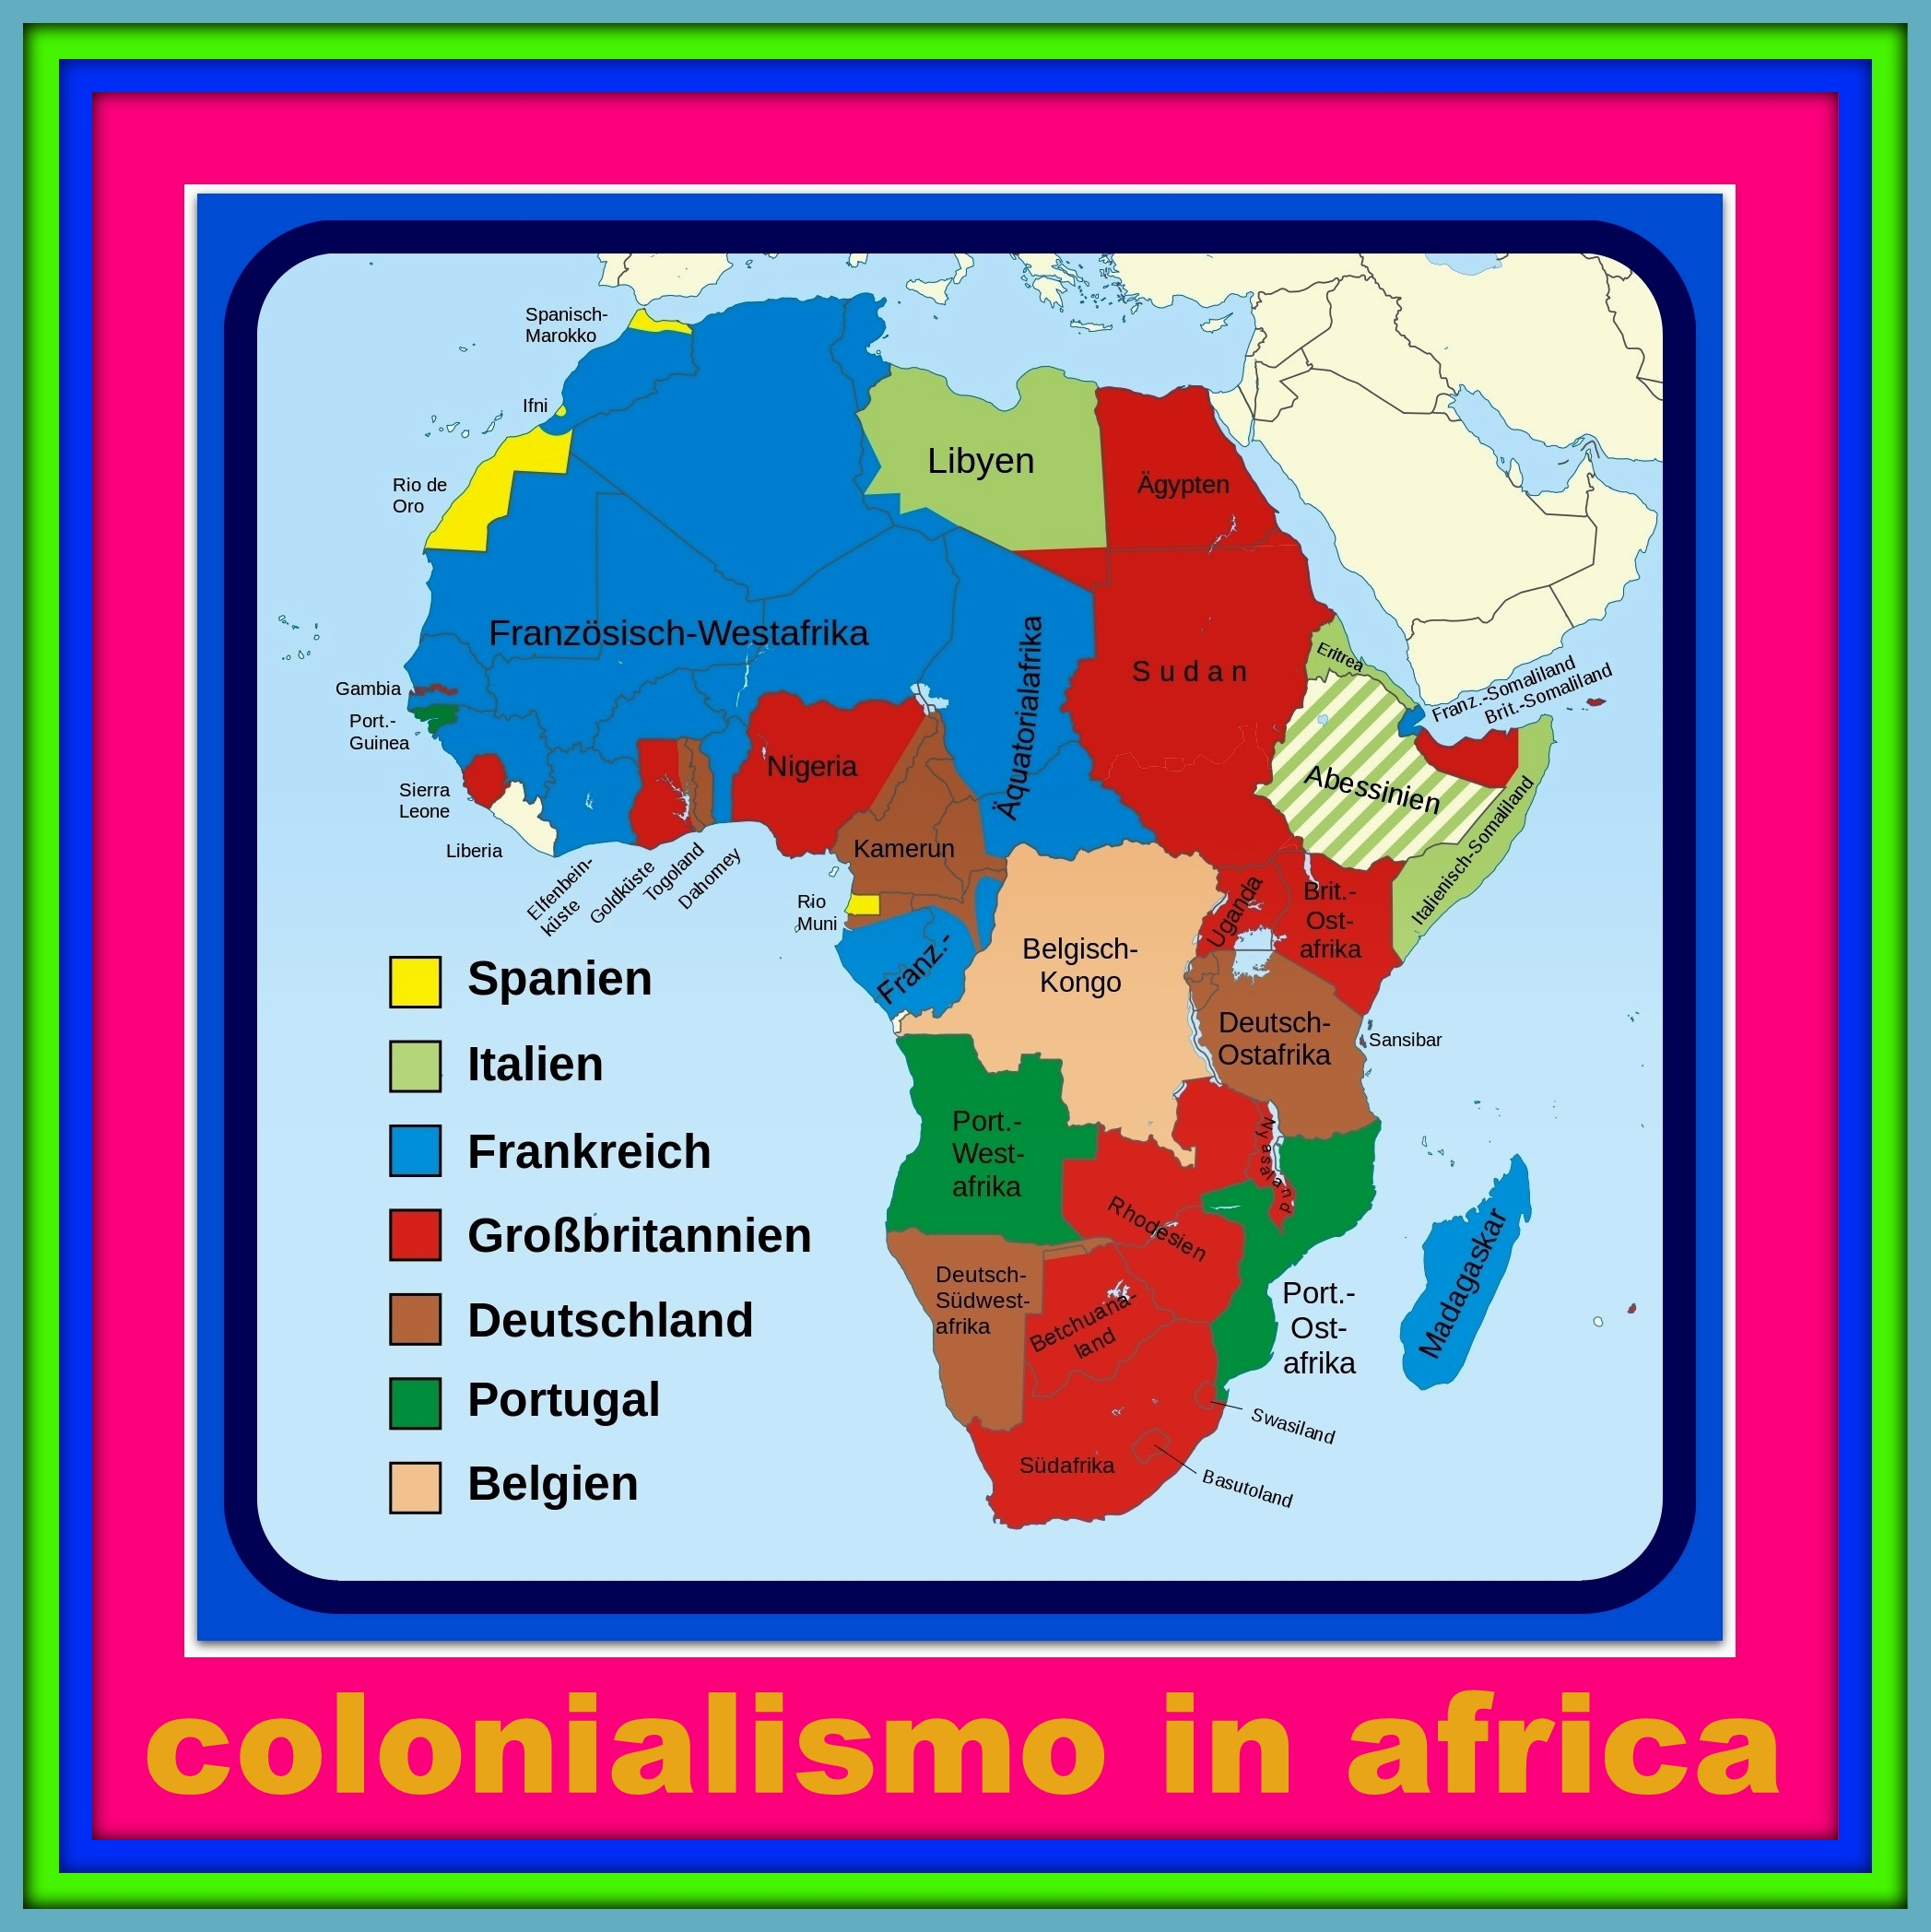 colonialismo in africa